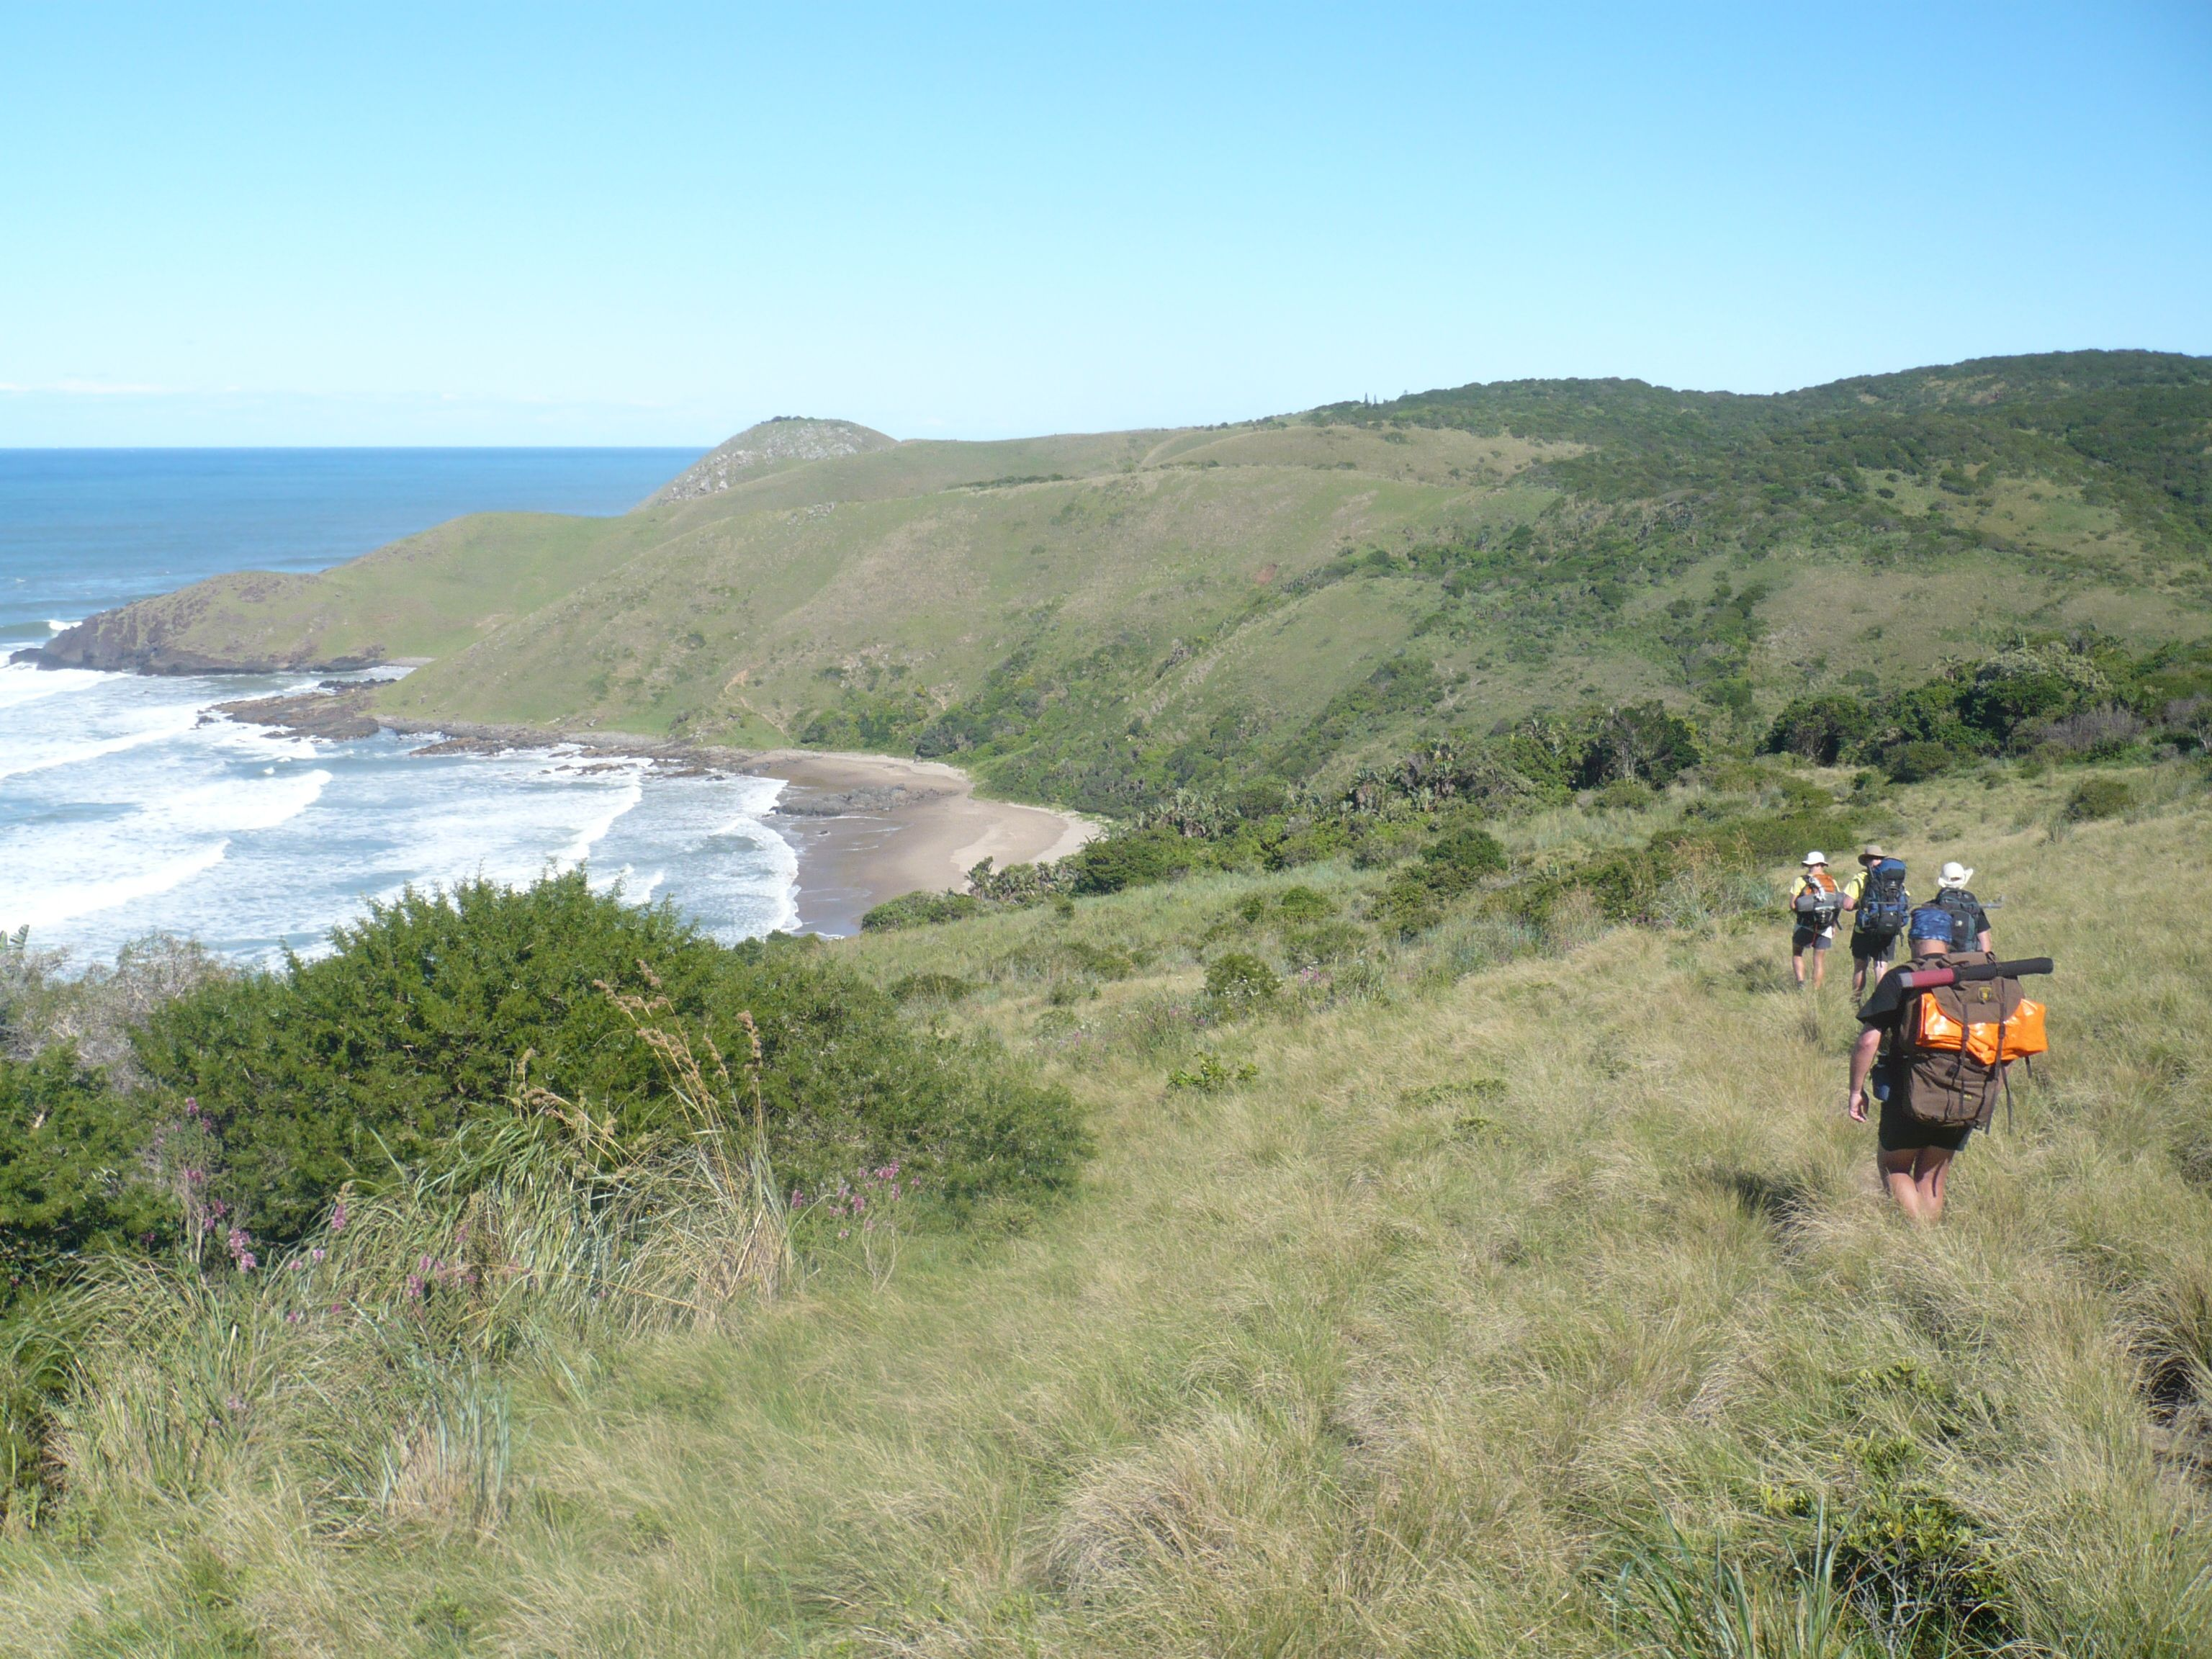 Transkei wild coast, Eastern Cape, South Africa